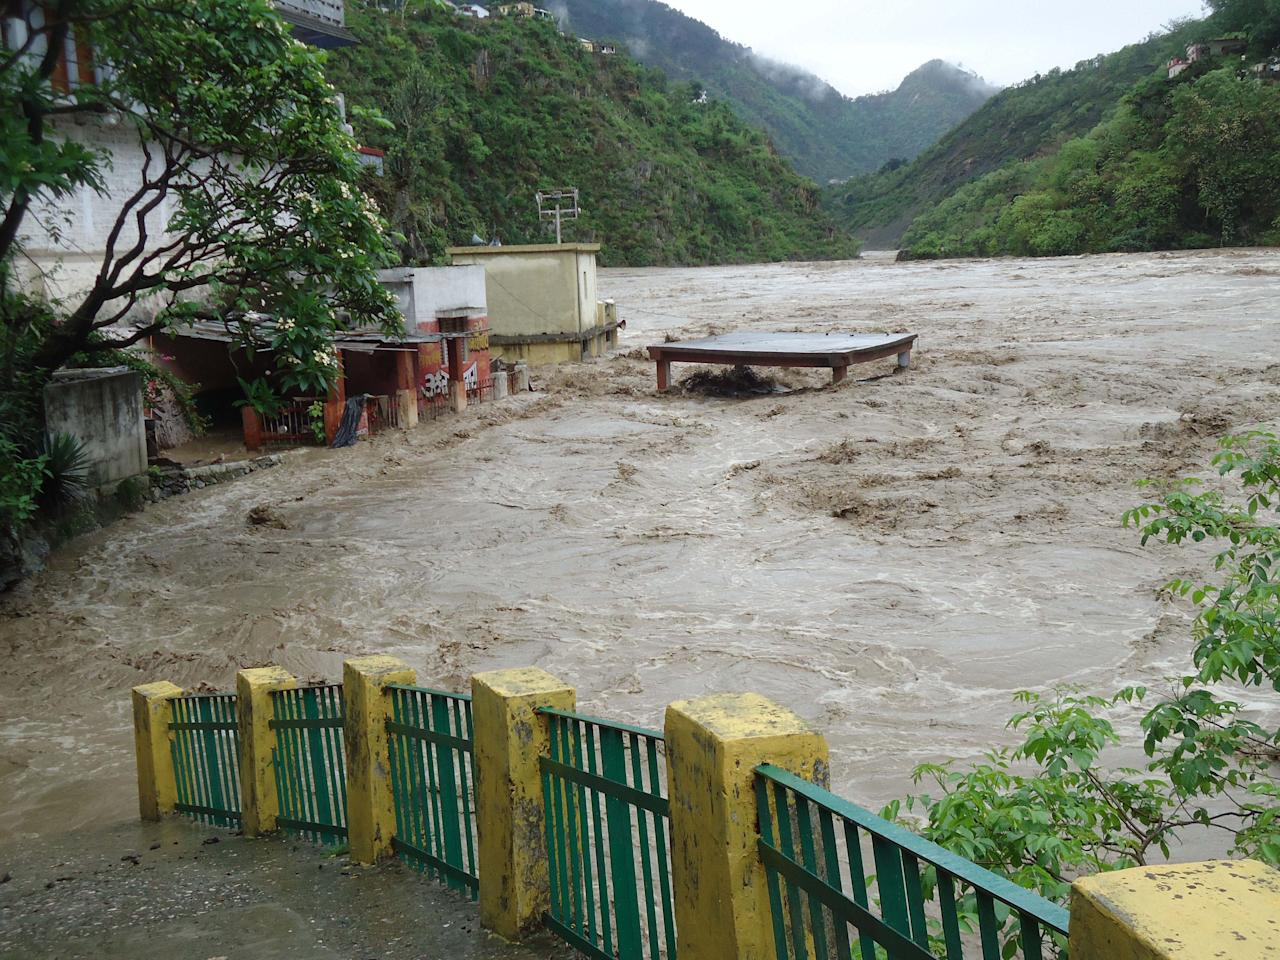 RUDRAPRAYAG, INDIA - JUNE 16: Several houses on the banks of Alaknanda River have fallen prey to the rise in water level post heavy rainfall on June 16, 2013 in Rudraprayag, India. 11 people died, nearly 50 were missing and thousands stranded in landslides set off by the incessant downpour in Uttarakhand. (Photo by Kuldeep Rana/Hindustan Times via Getty Images)